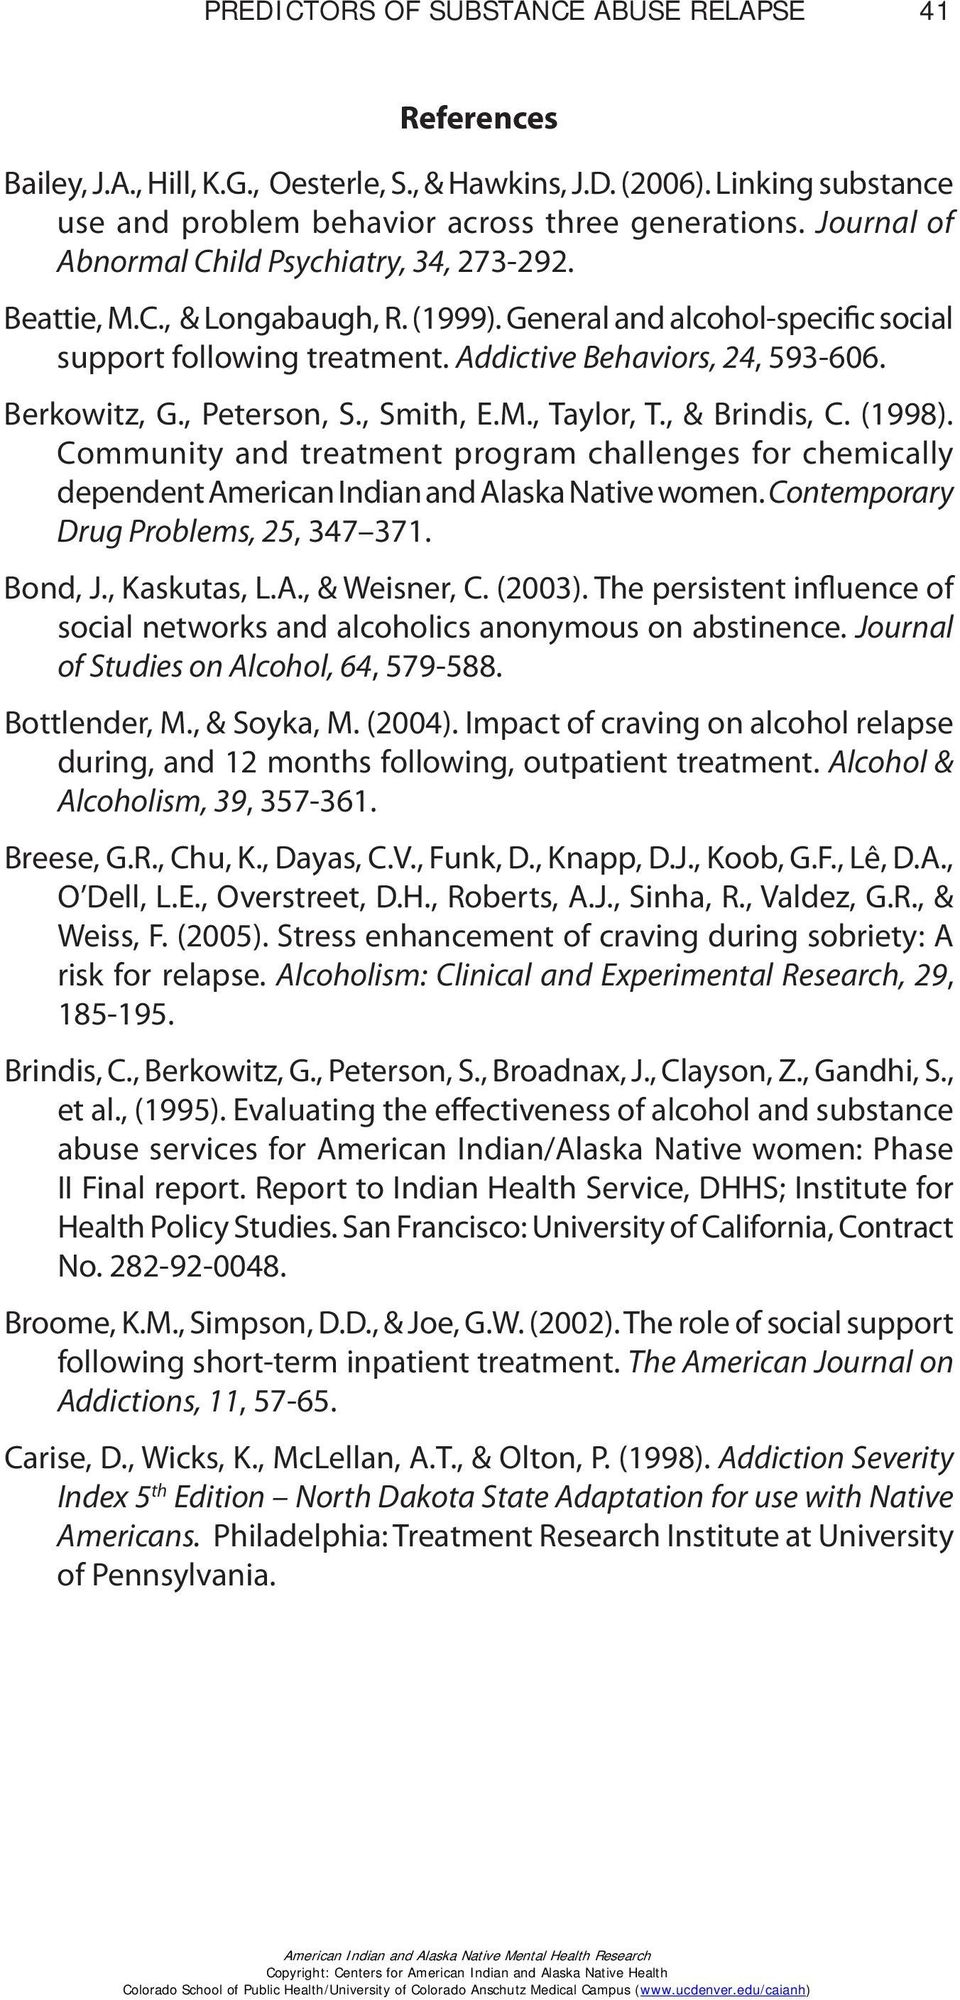 Berkowitz, G., Peterson, S., Smith, E.M., Taylor, T., & Brindis, C. (1998). Community and treatment program challenges for chemically dependent American Indian and Alaska Native women.